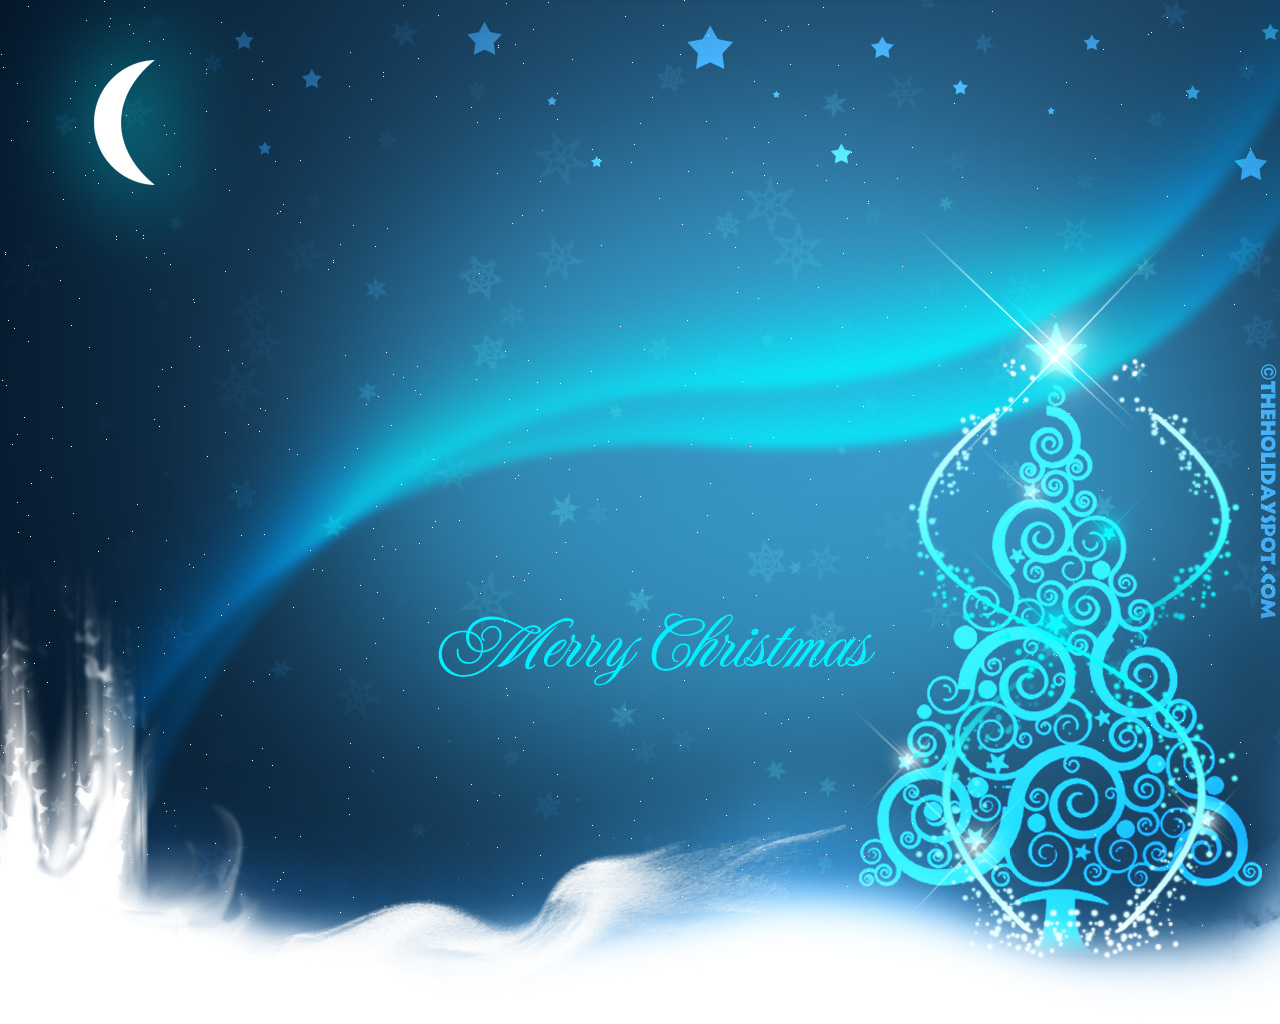 1280x1024 Christmas Wallpapers   Christmas wallpaper 1280x1024